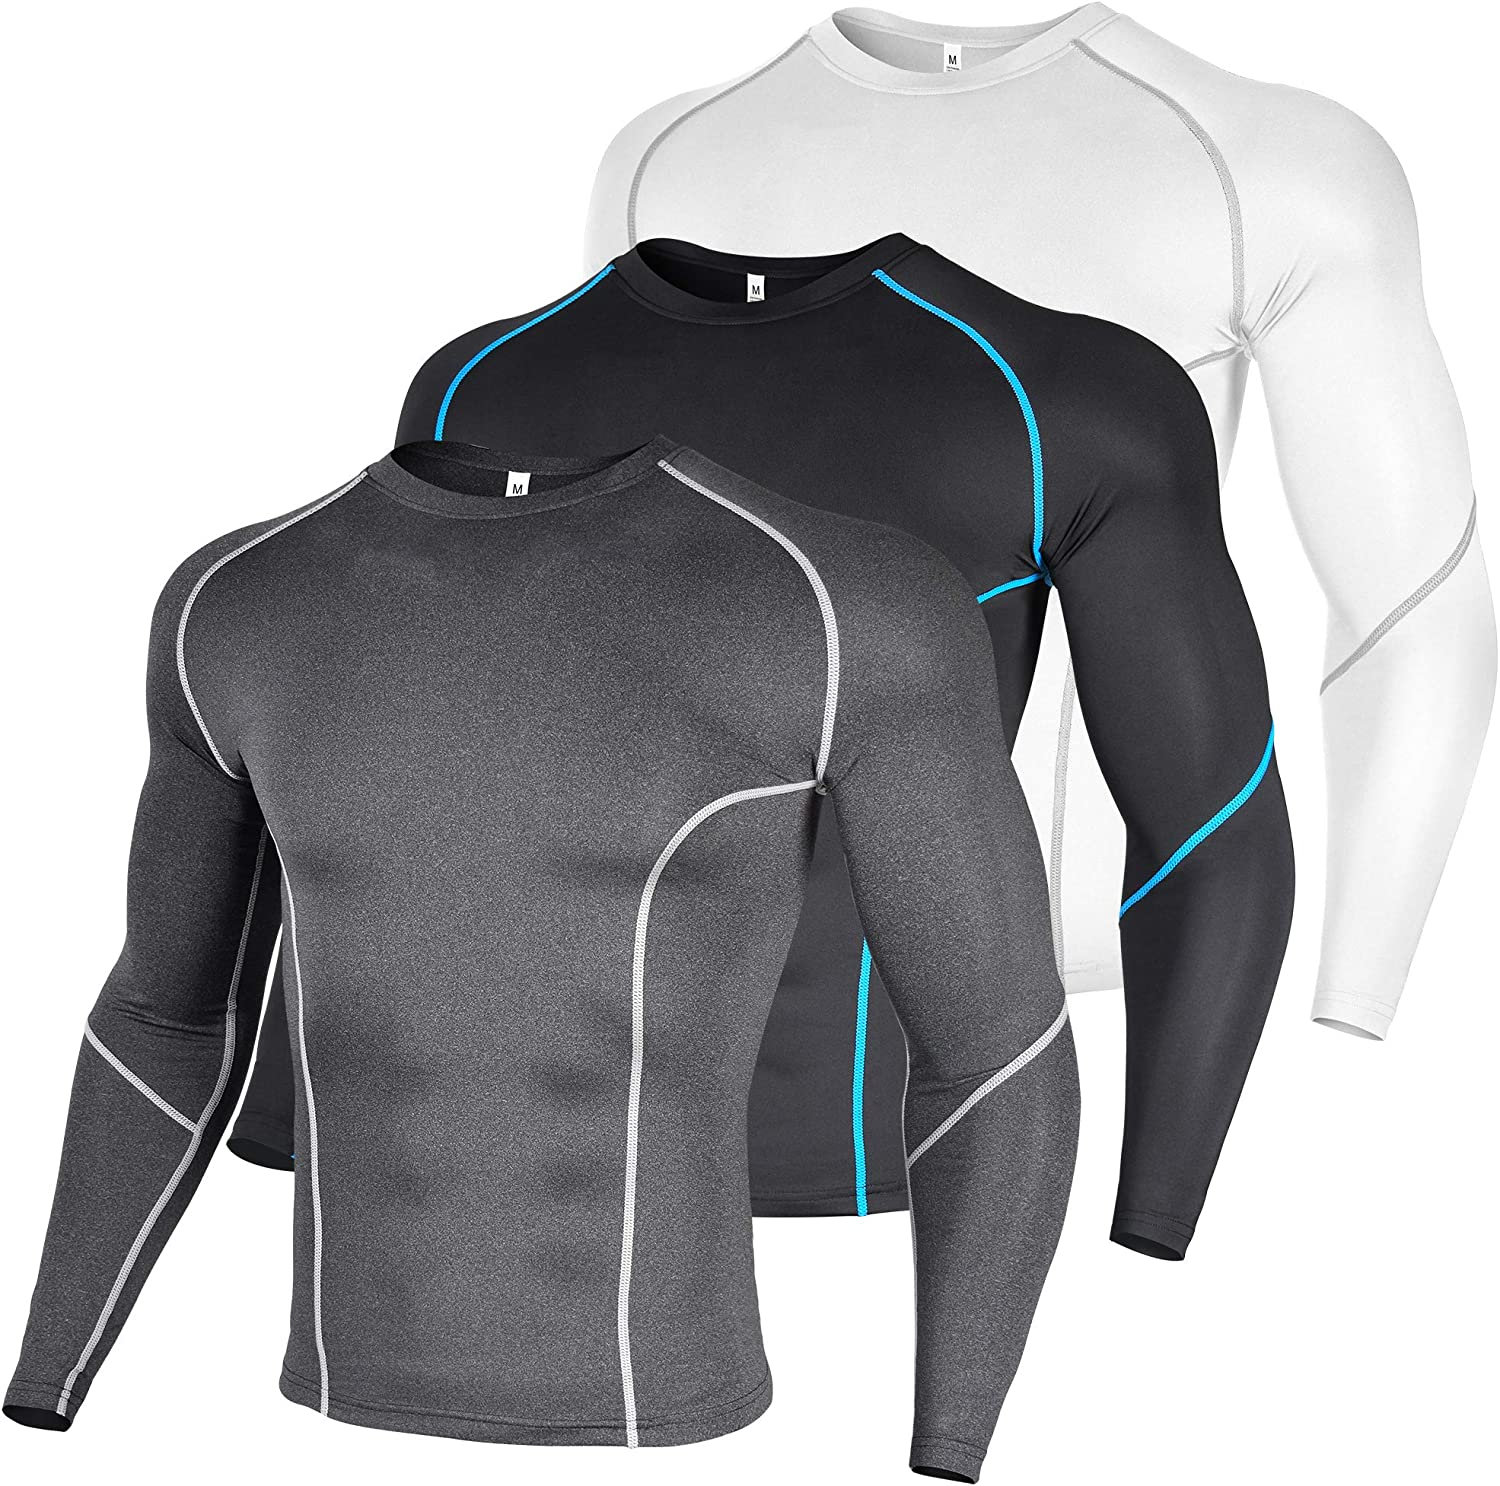 Xtextile Men's Dry Fit Compression Base Layer Athletic Workout Long Sleeve Shirts 3 Pack